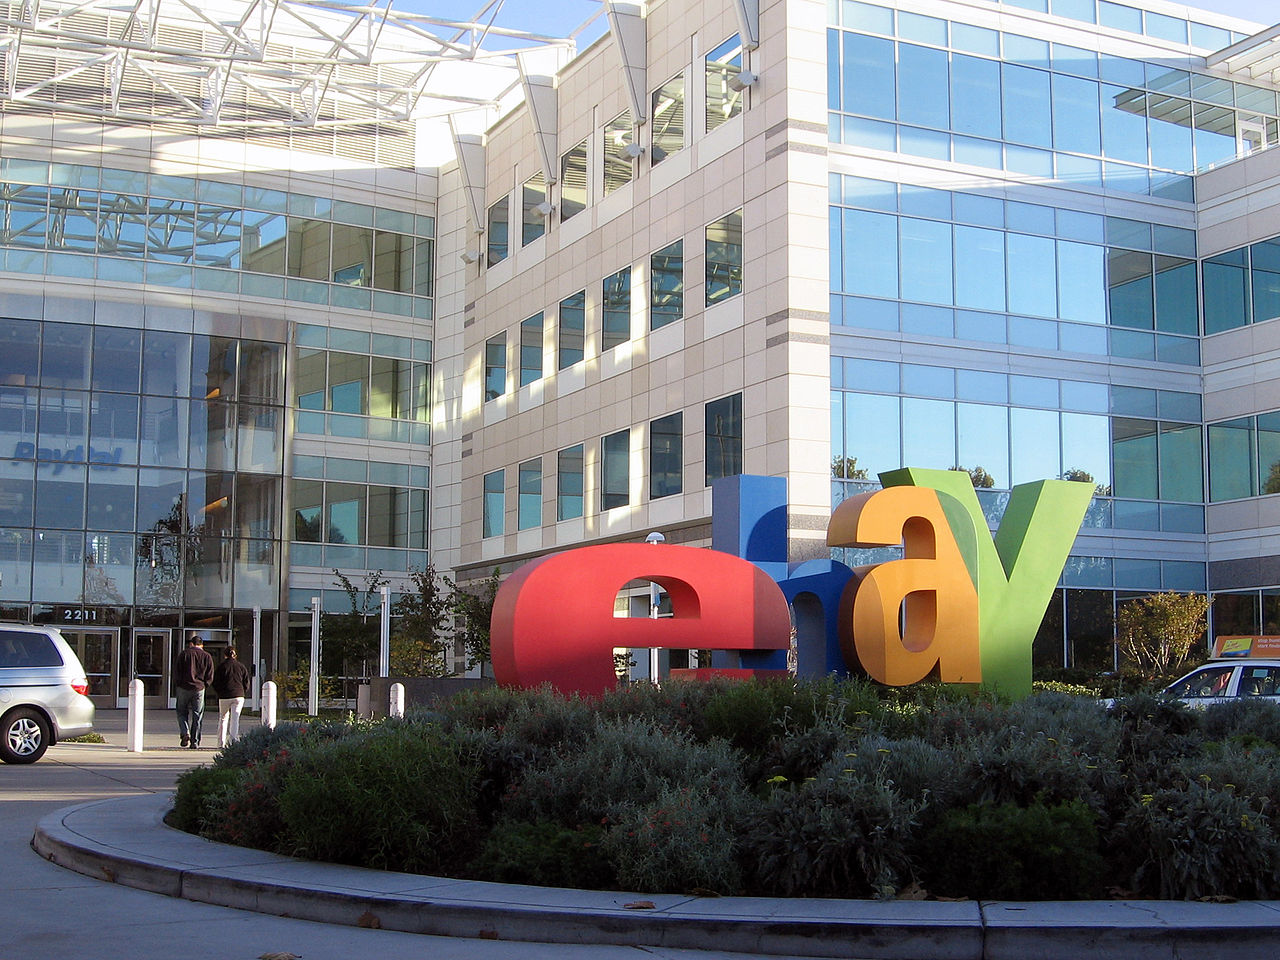 ebay office. How To Make Your Office More \u0027Silicon Valley\u0027 Ebay